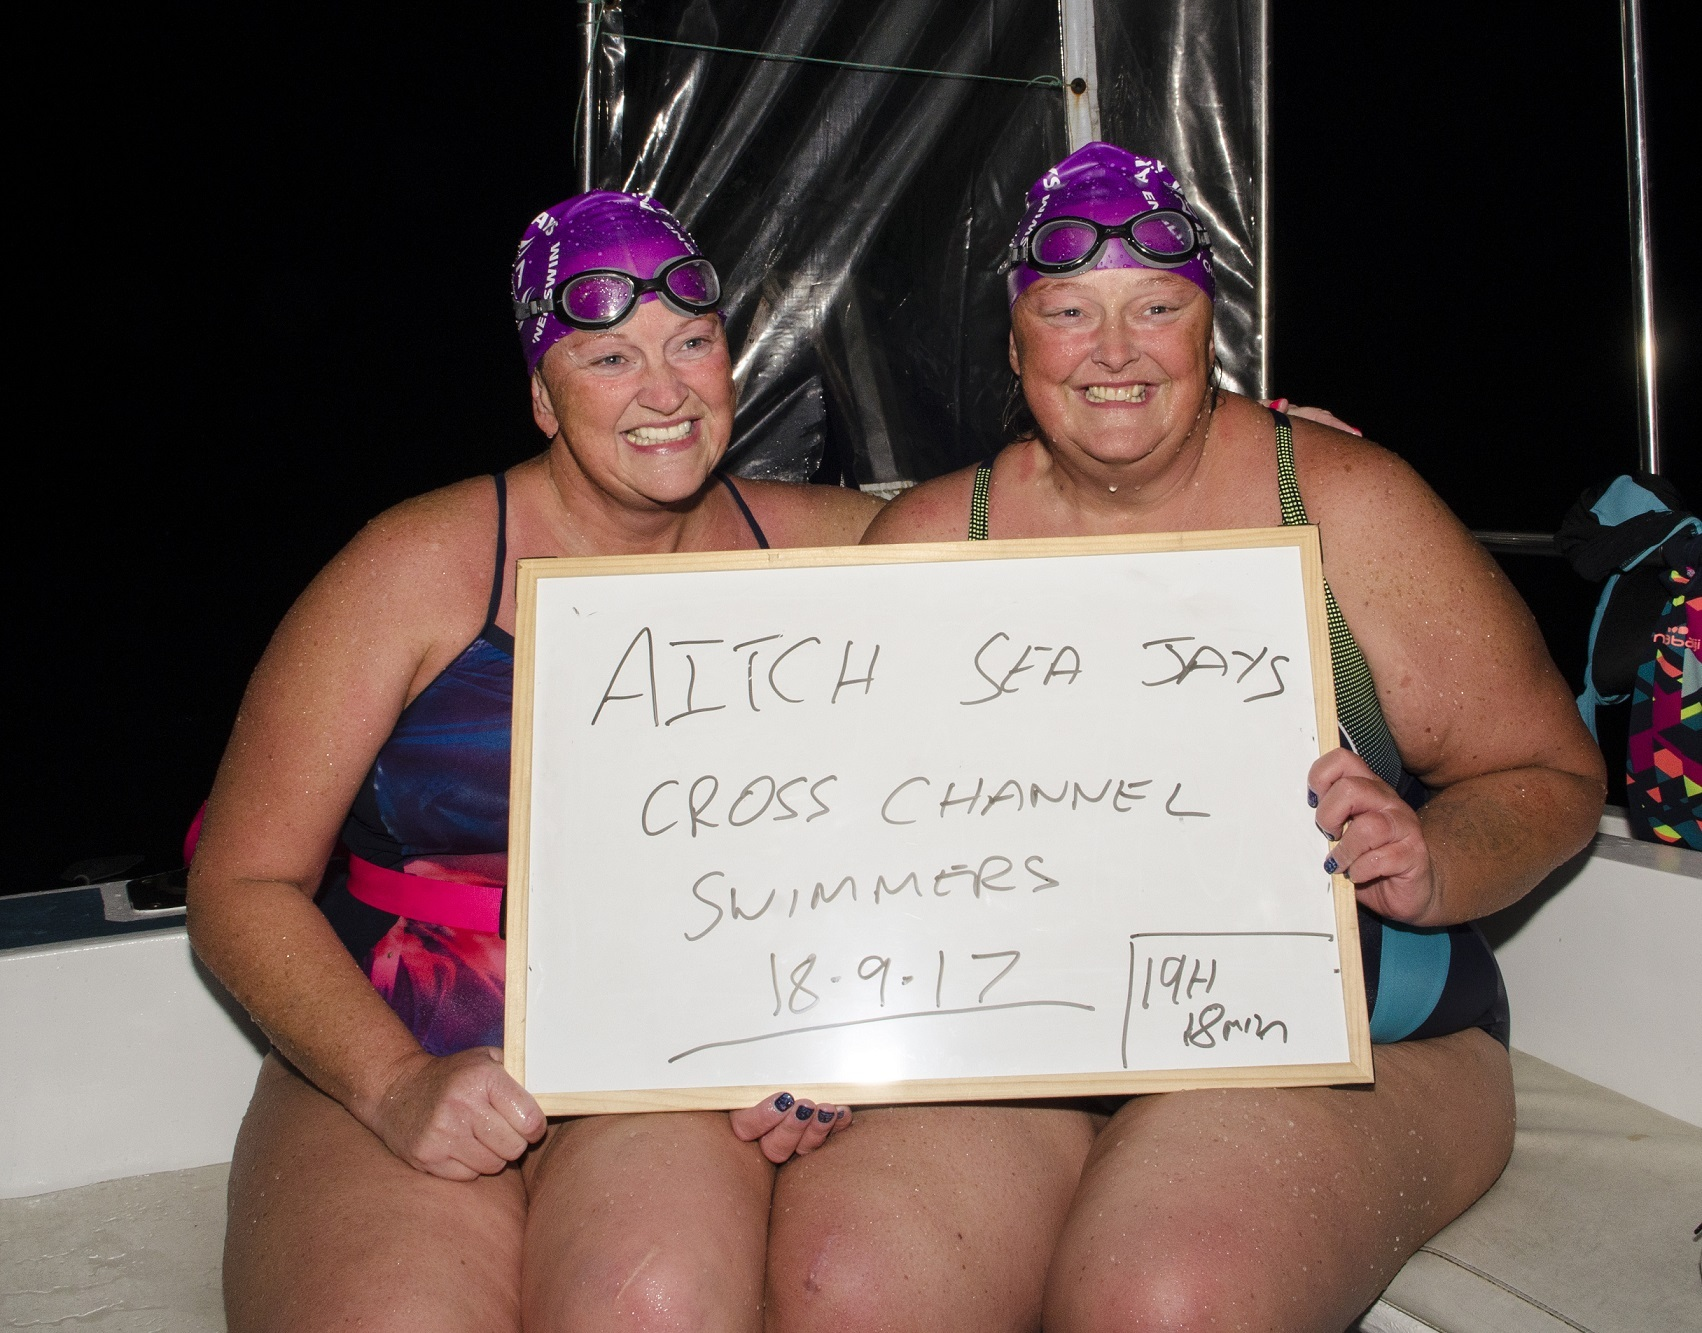 Sisters Helen Smith and Hayley Brant completed the channel swim in 19 hours and 19 minutes and have raised £7,500 towards life saving research